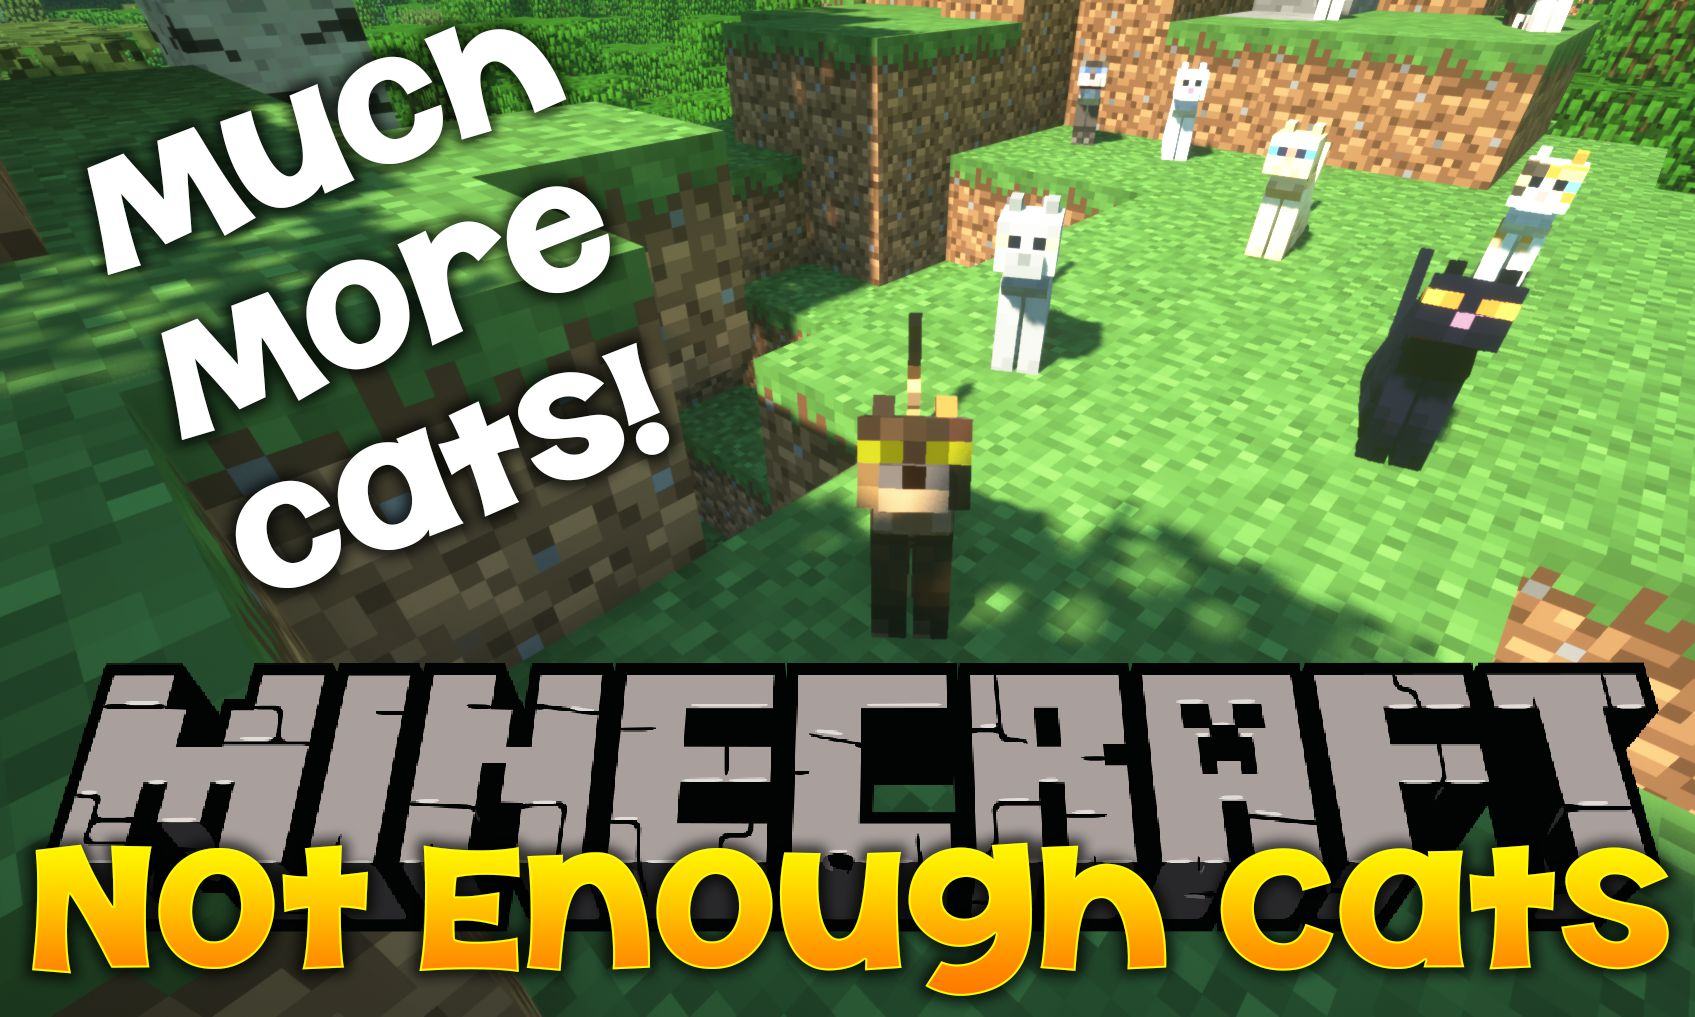 Not Enough Cats mod for minecraft logo